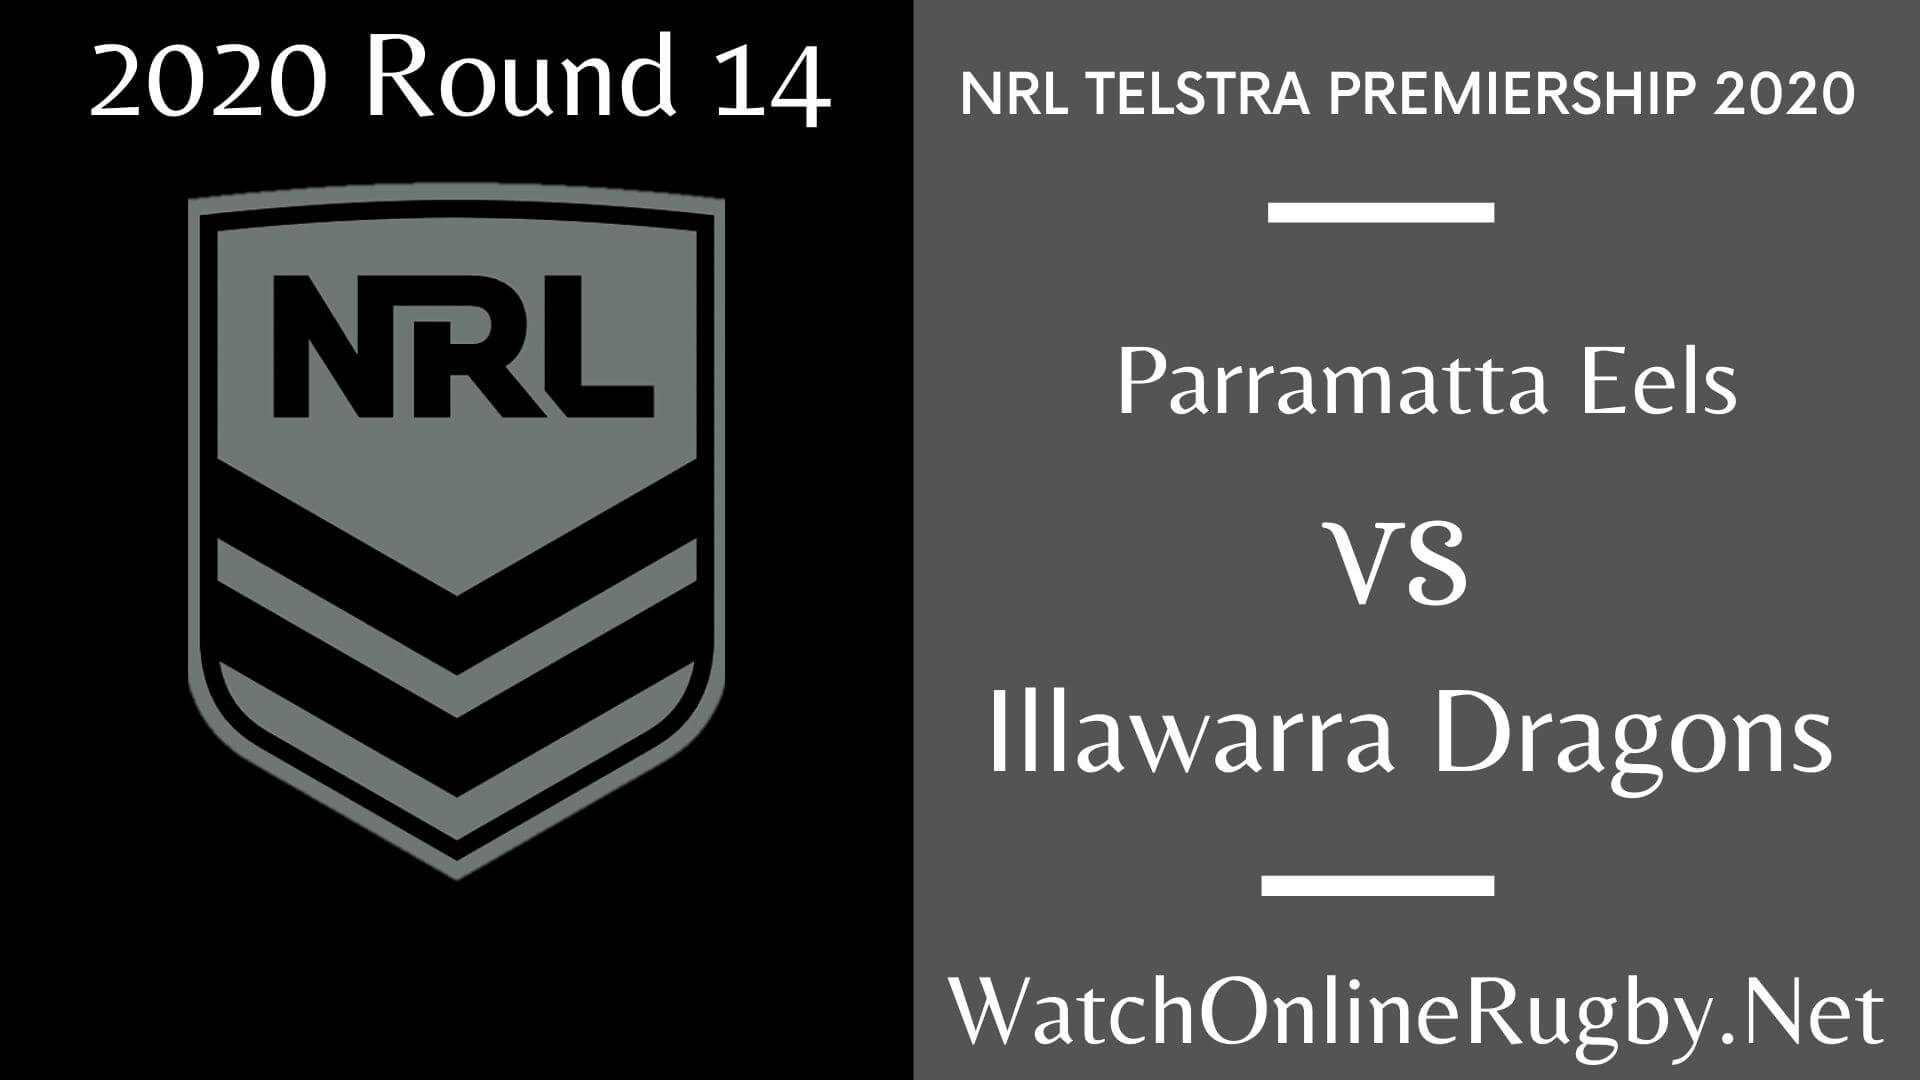 Parramatta Eels Vs Illawarra Dragons Highlights 2020 Round 14 NRL Rugby